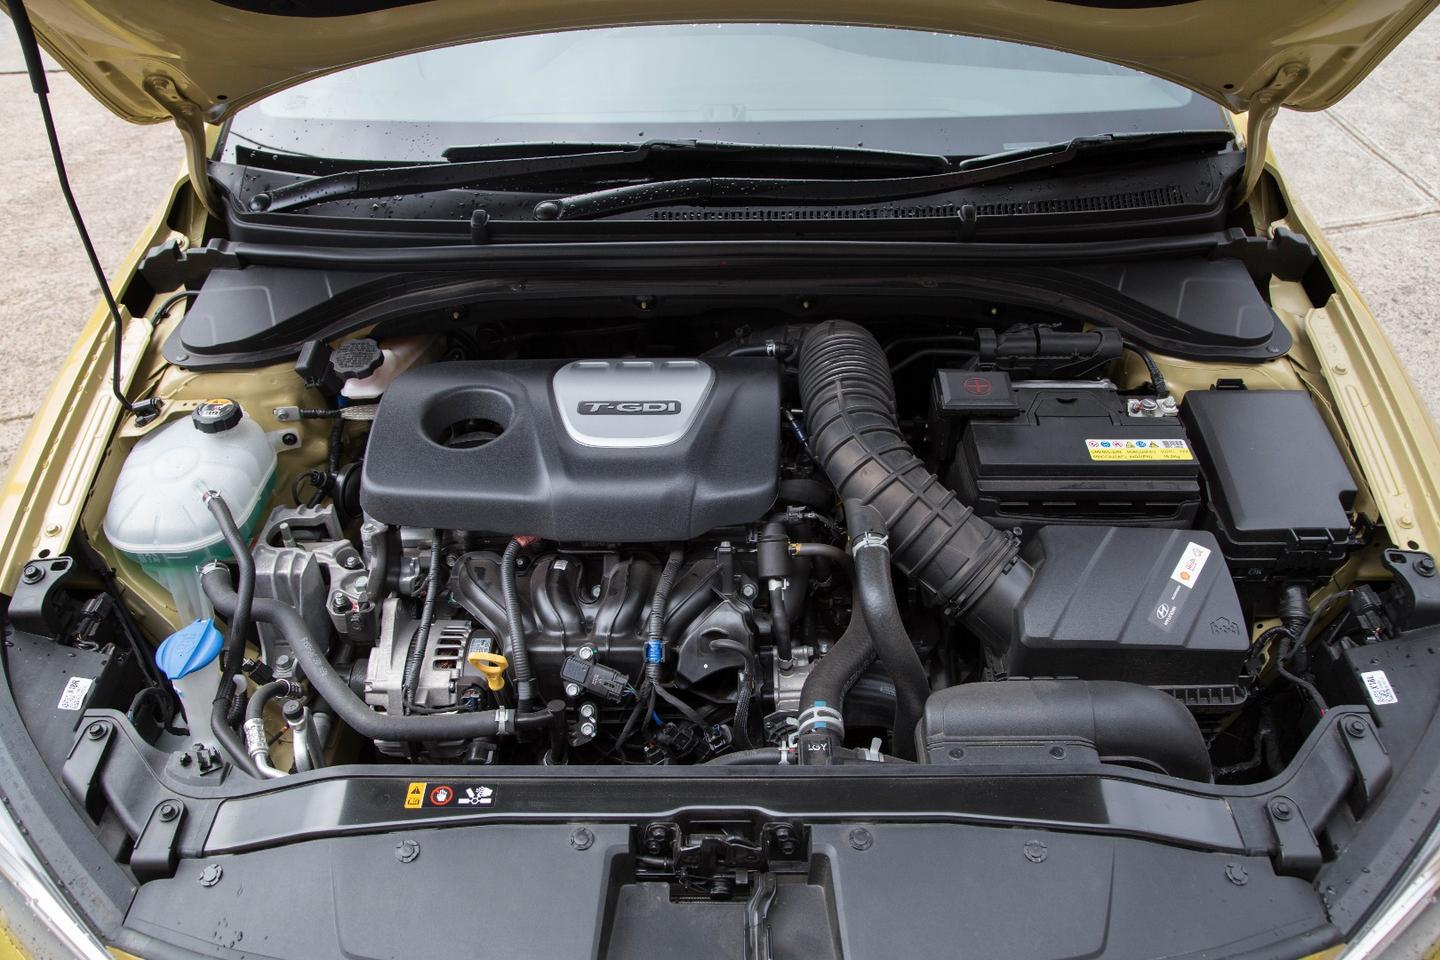 The engine in the Elantra SR Turbo makes 150 kW